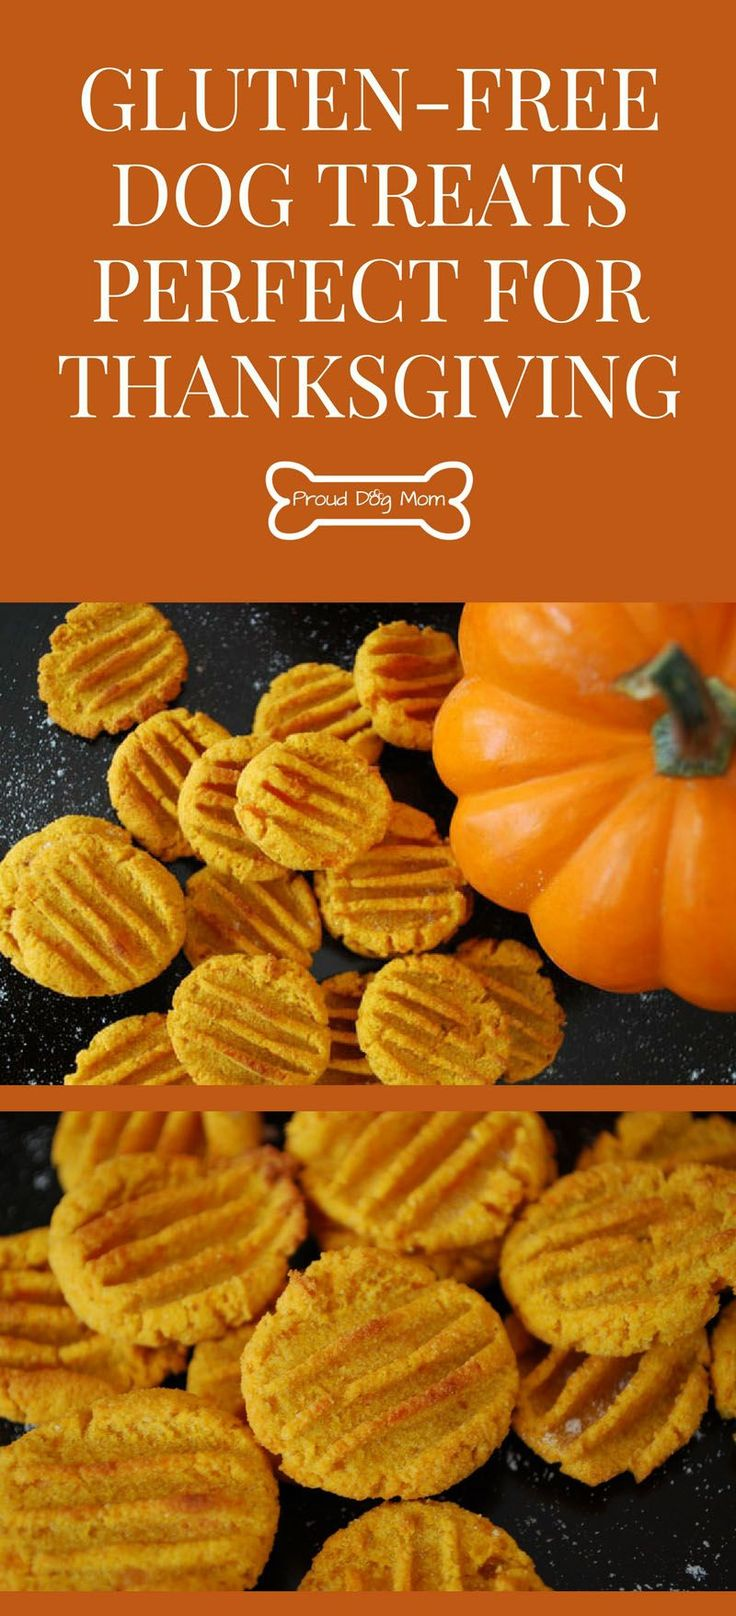 DIY Dog Treats: Sweet Potato Pumpkin Bites Perfect For Thanksgiving | Gluten-Free Dog Treats | Healthy Dog Treats | Homemade Dog Treats |